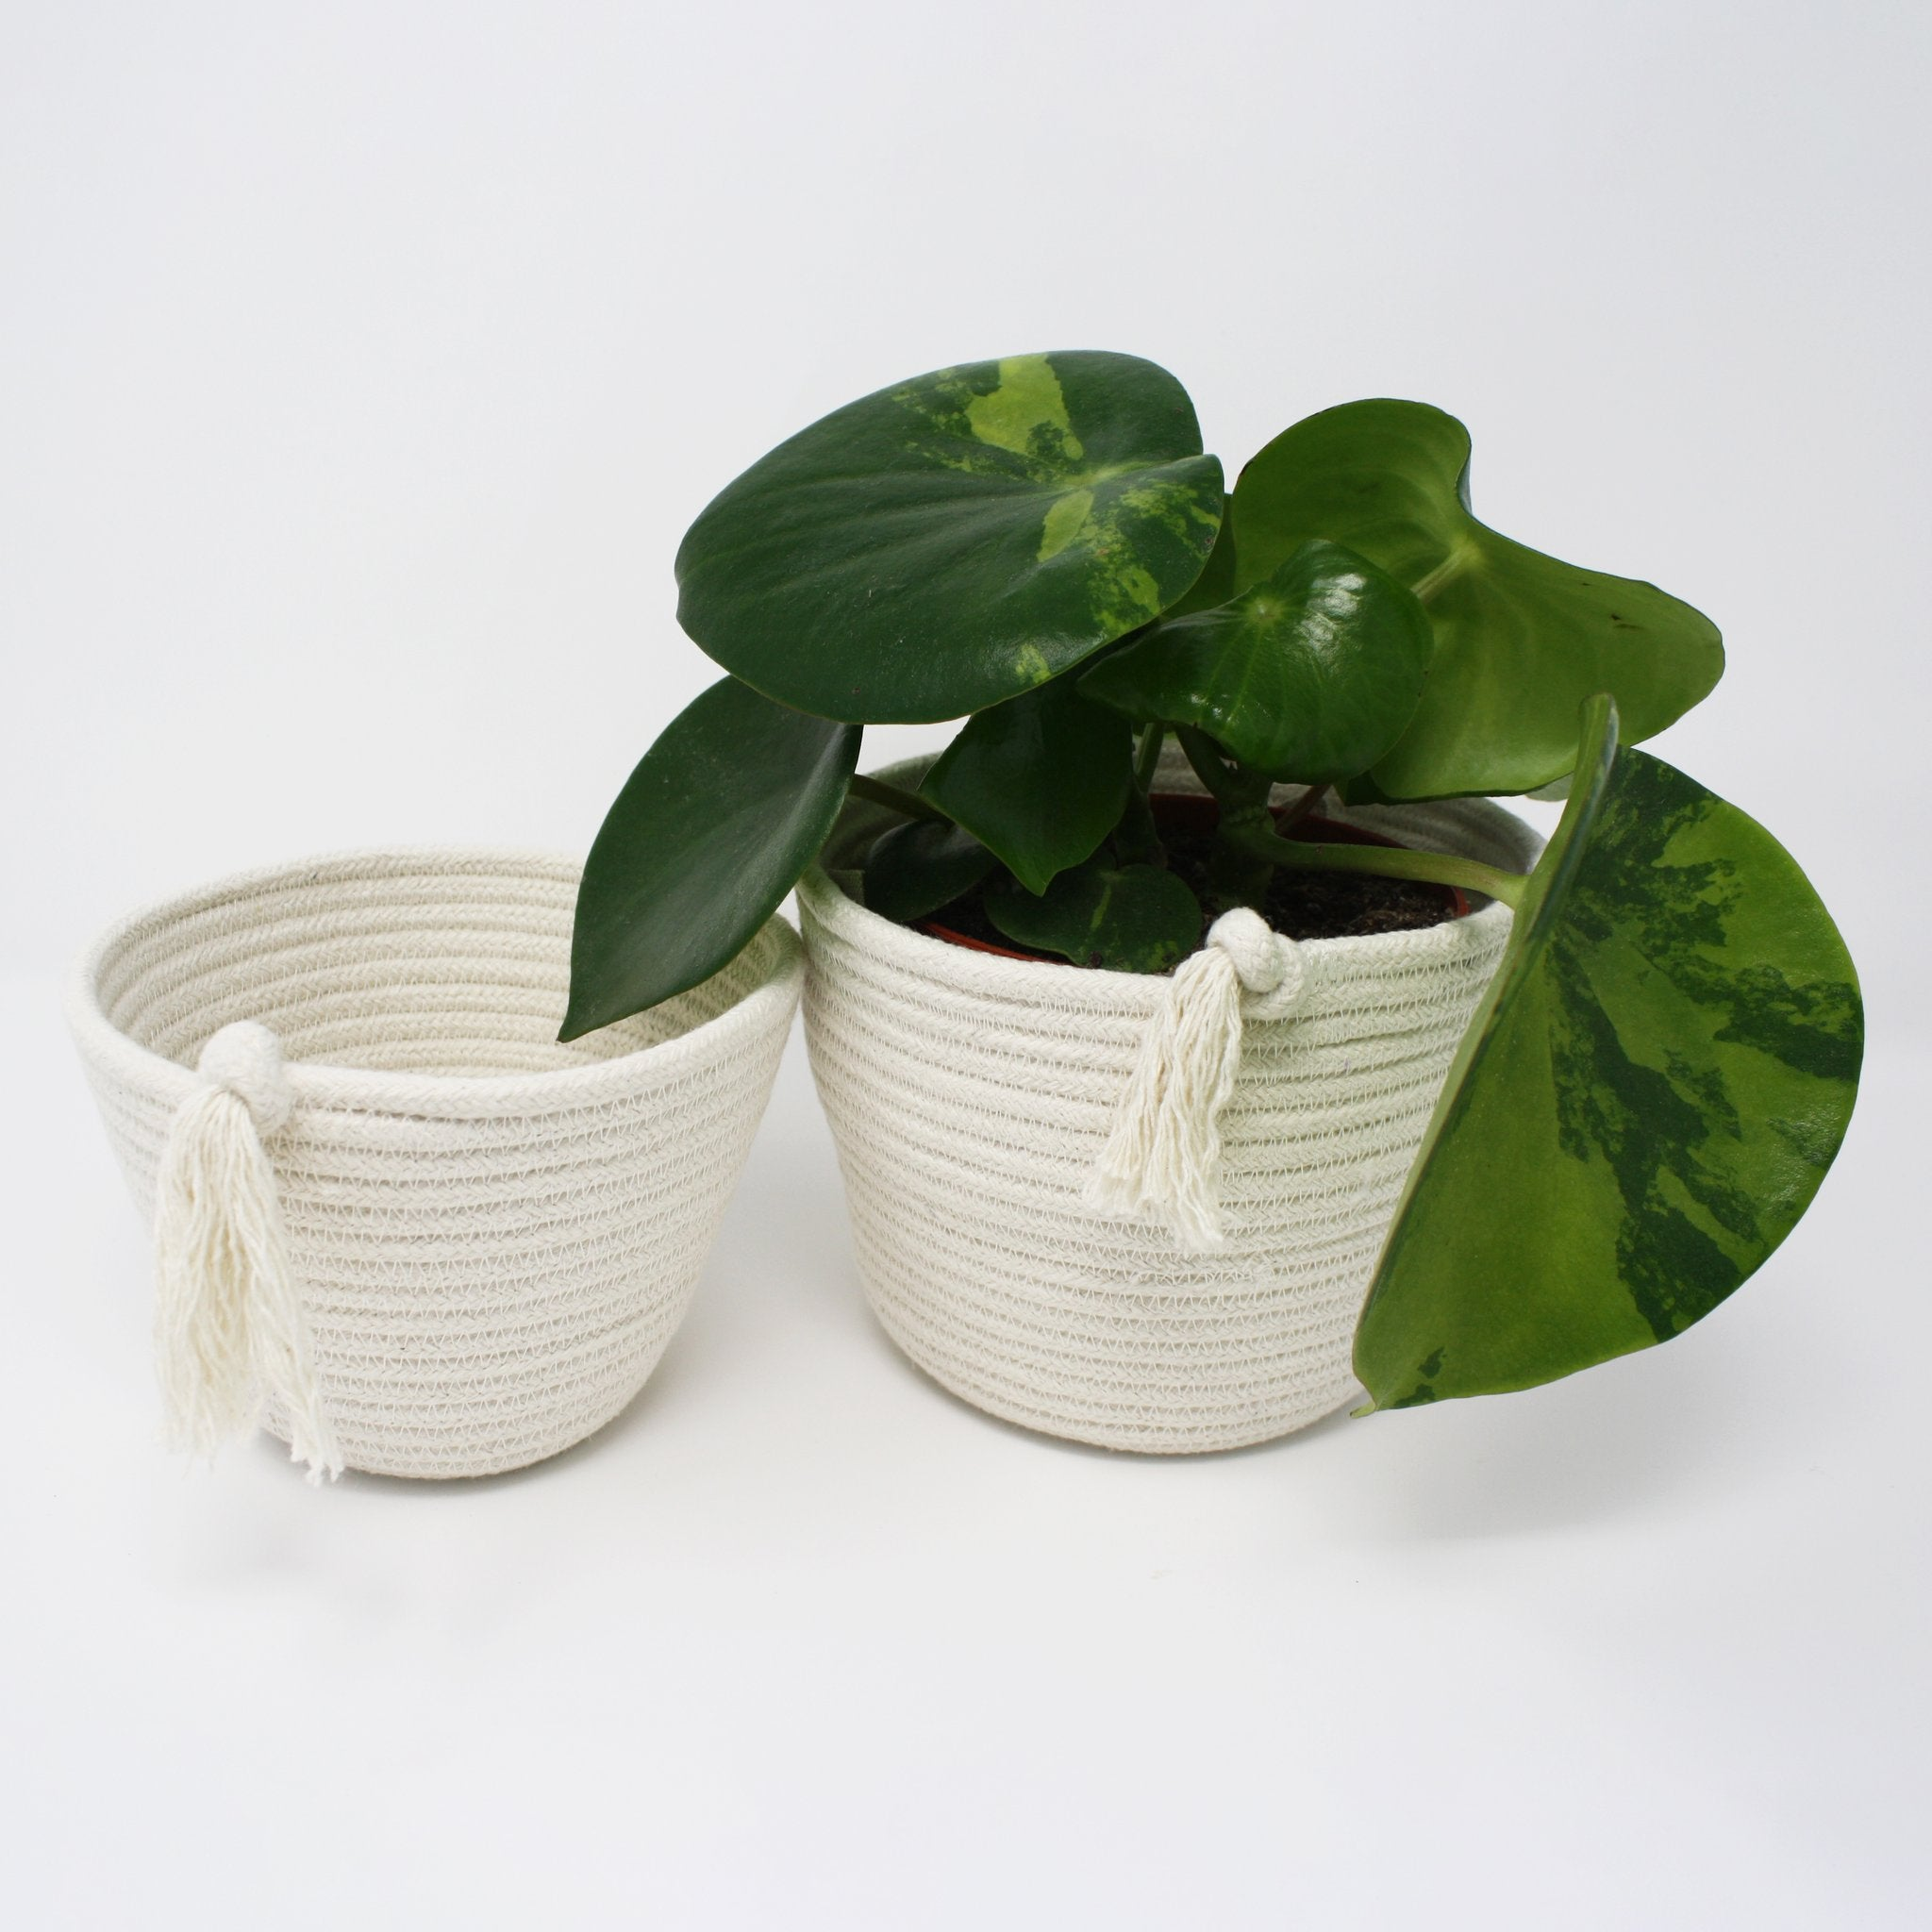 Cotton ECO-TWIST Plant, 100% Cotton - set of 2 (small and large) - natoorio